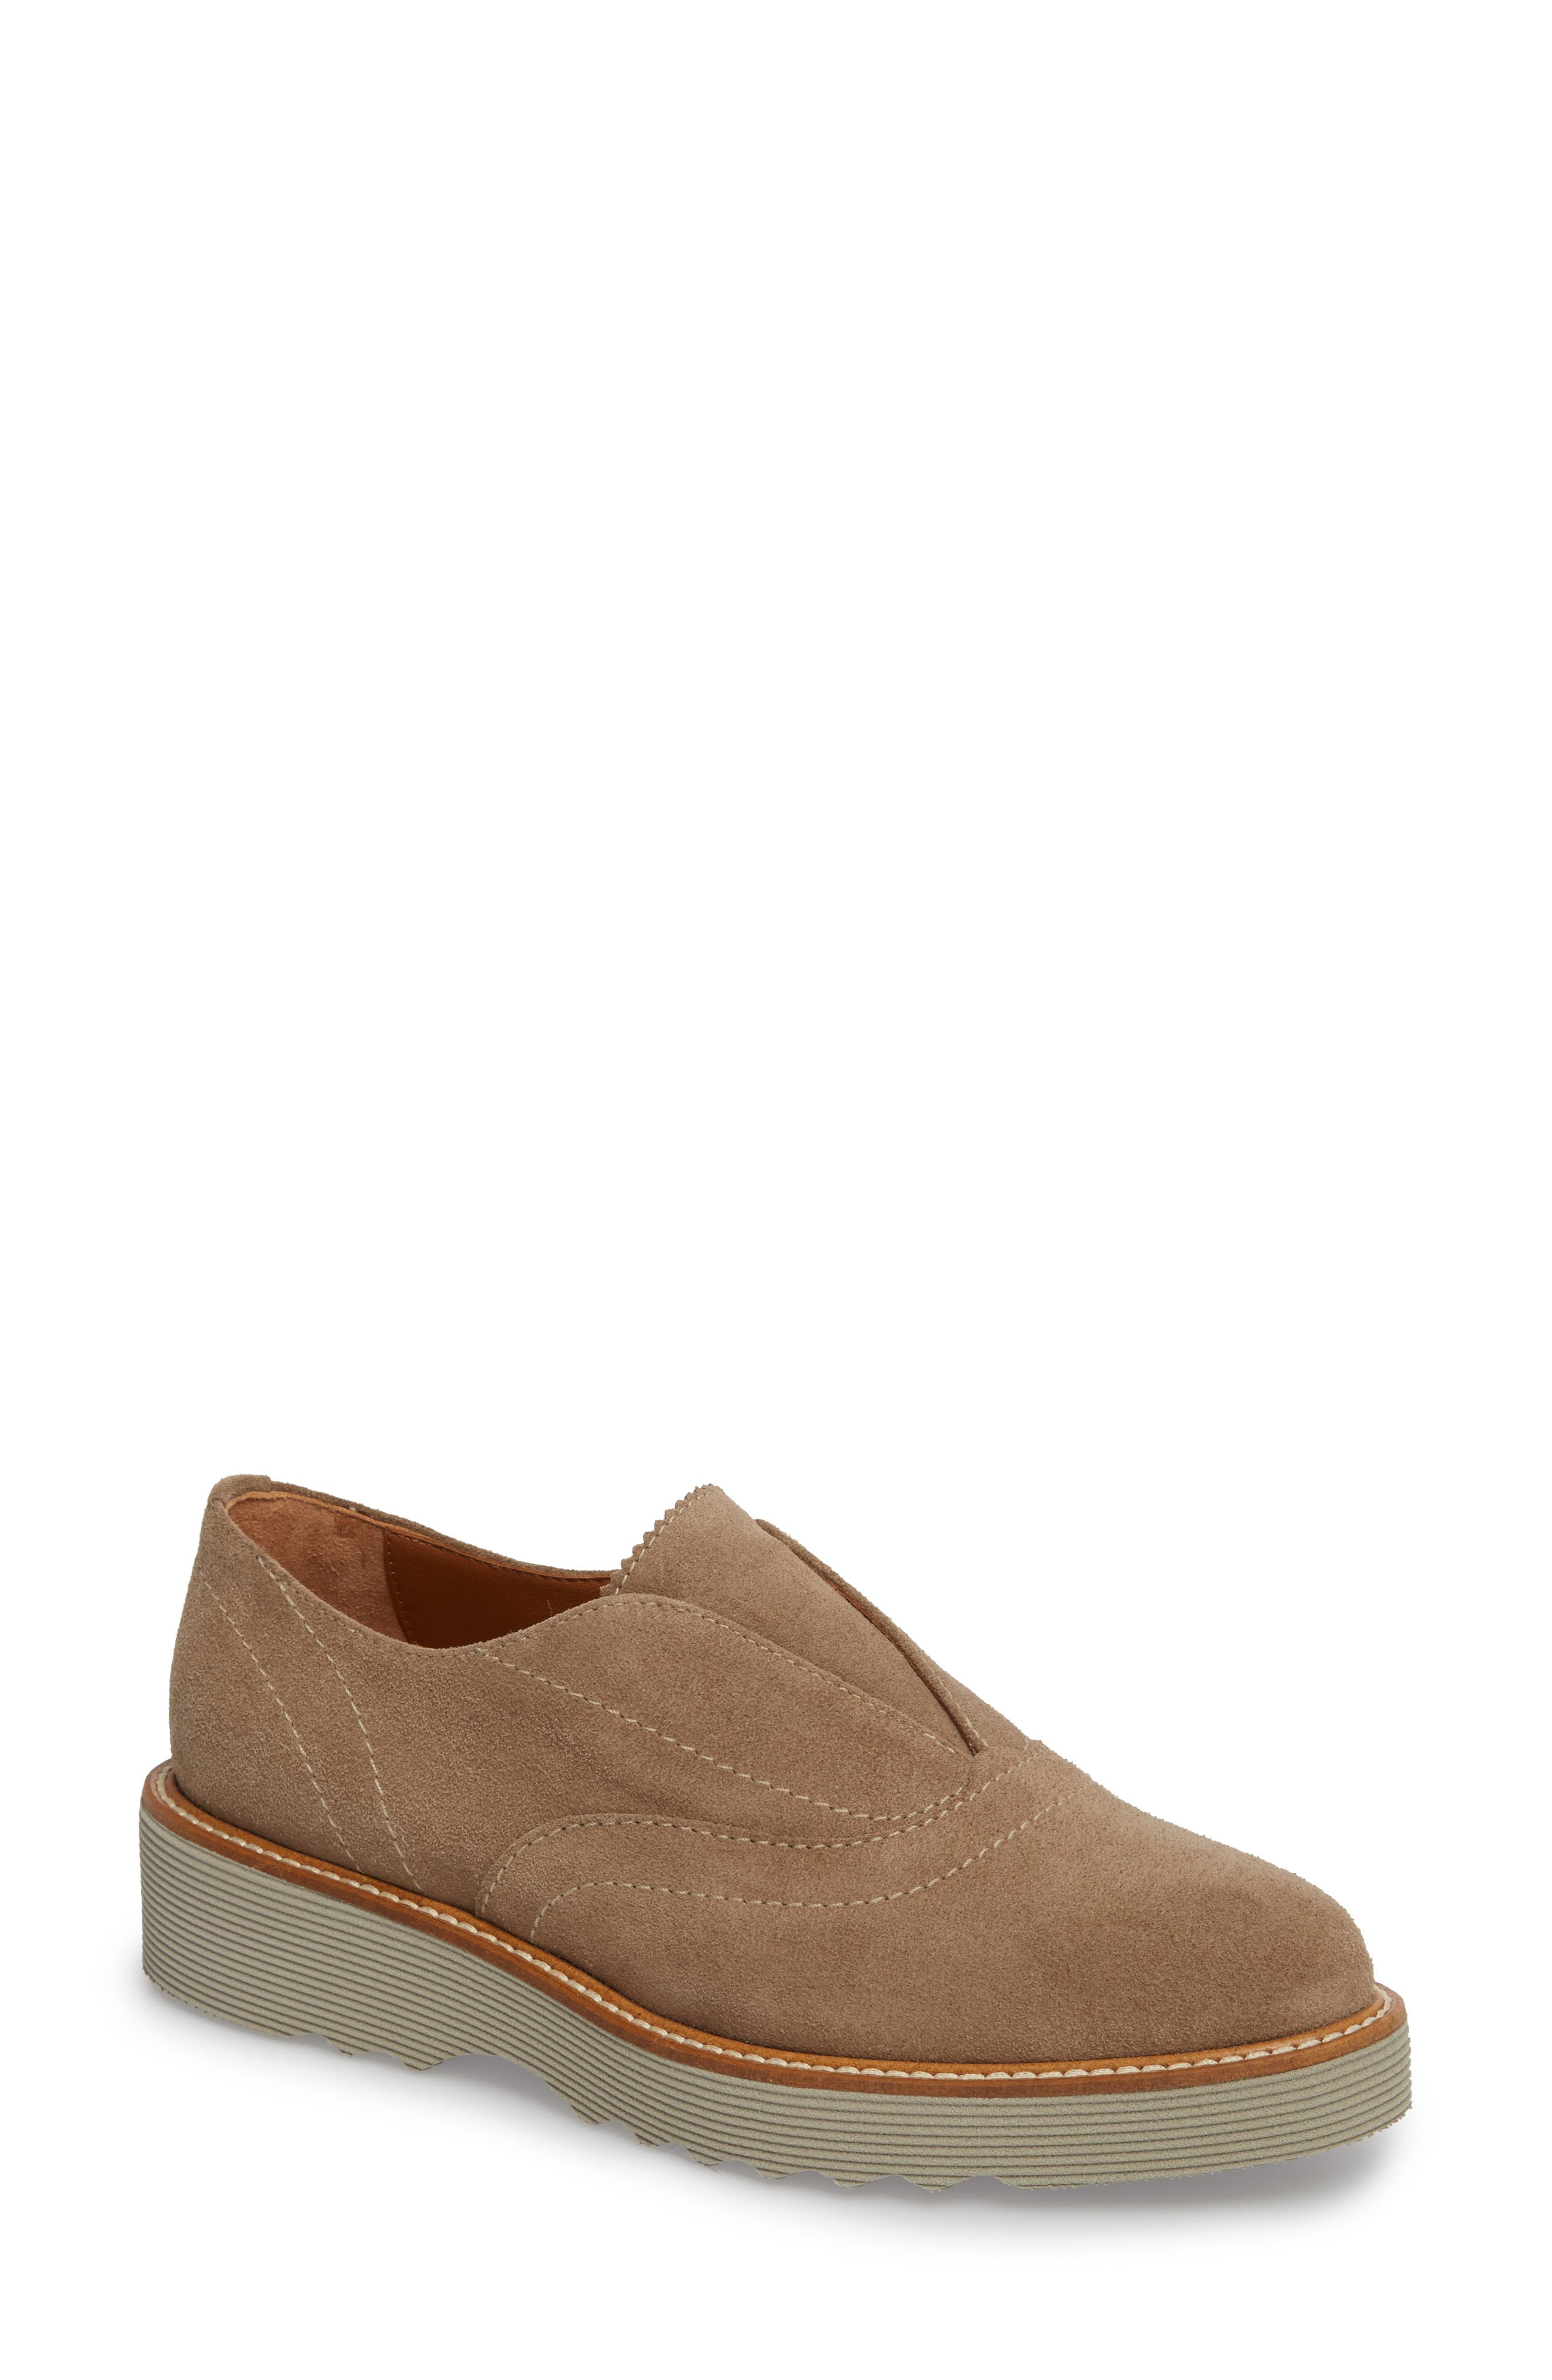 Kaleigh Weatherproof Loafer,                         Main,                         color, Taupe